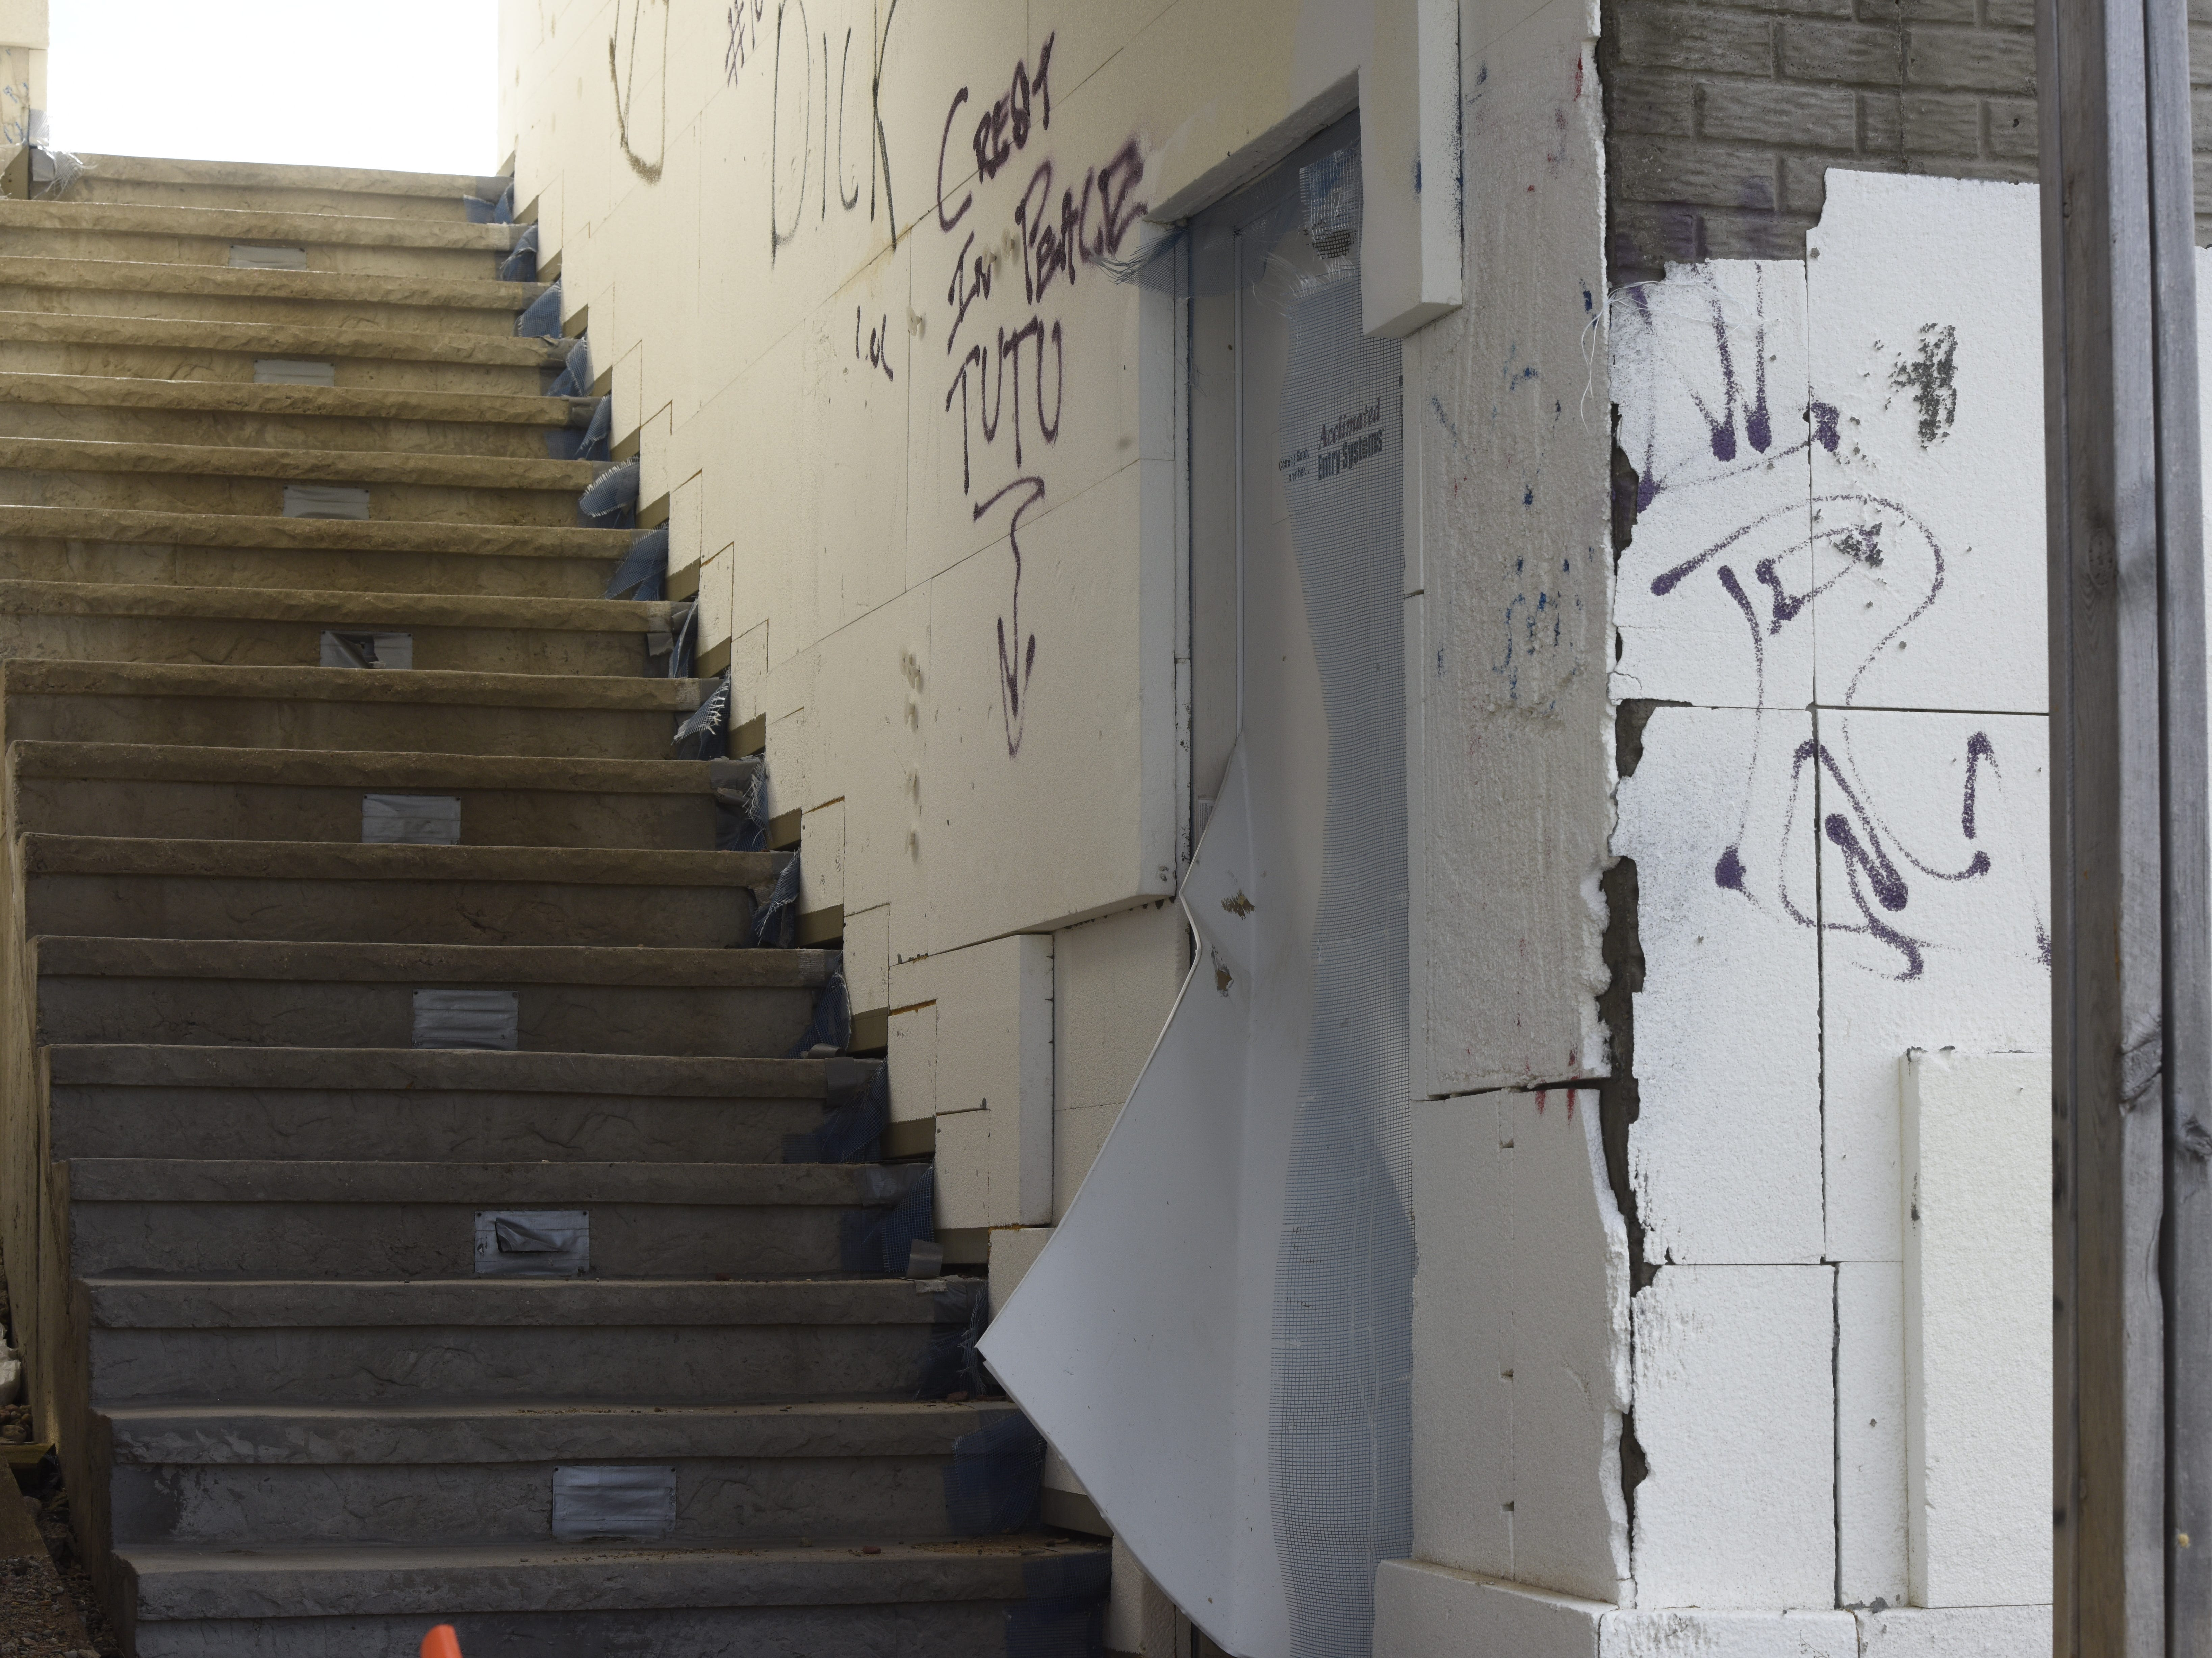 The city of Sioux Falls is suing the owner of property at 6800 S Westfield Trail in hopes of ceasing and demolishing the unfinished structure on it. Graffiti, unkempt weeds and construction debris that litter the property have generated multiple code violation citations since work on the project started in 2013.